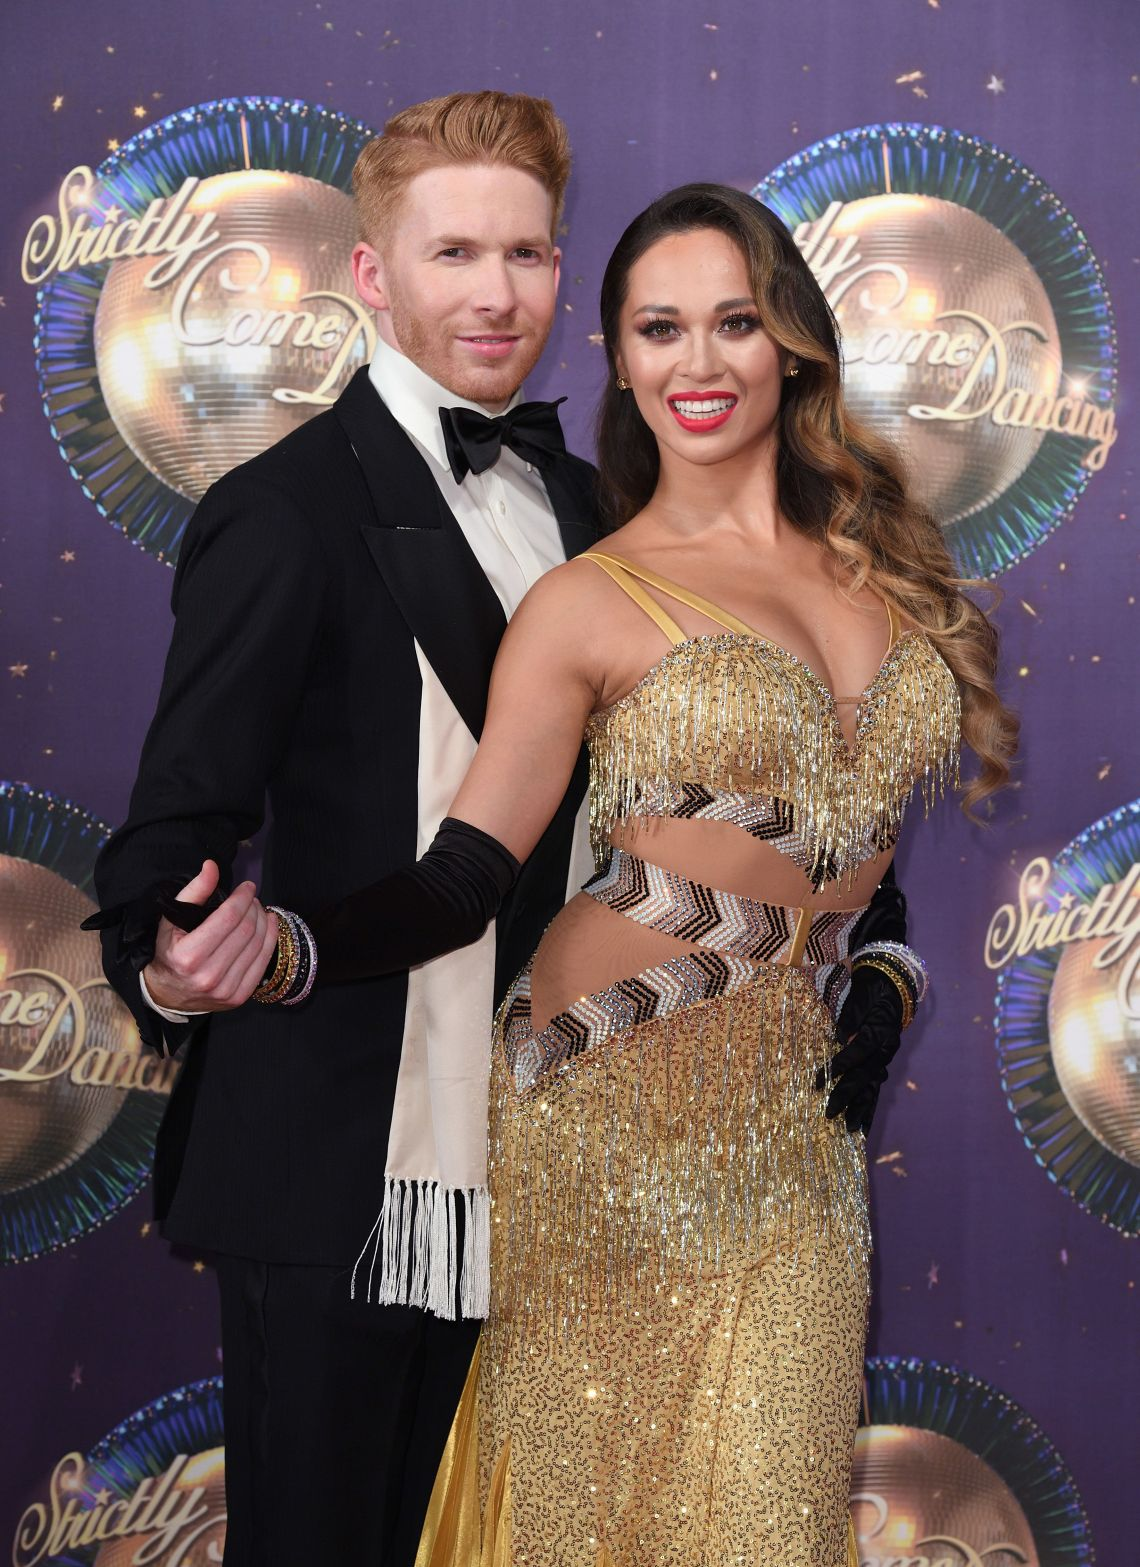 'Strictly' Pro Neil Jones Questioned Existence Of 'Curse' A Week Before Katya And Seann Kiss Drama